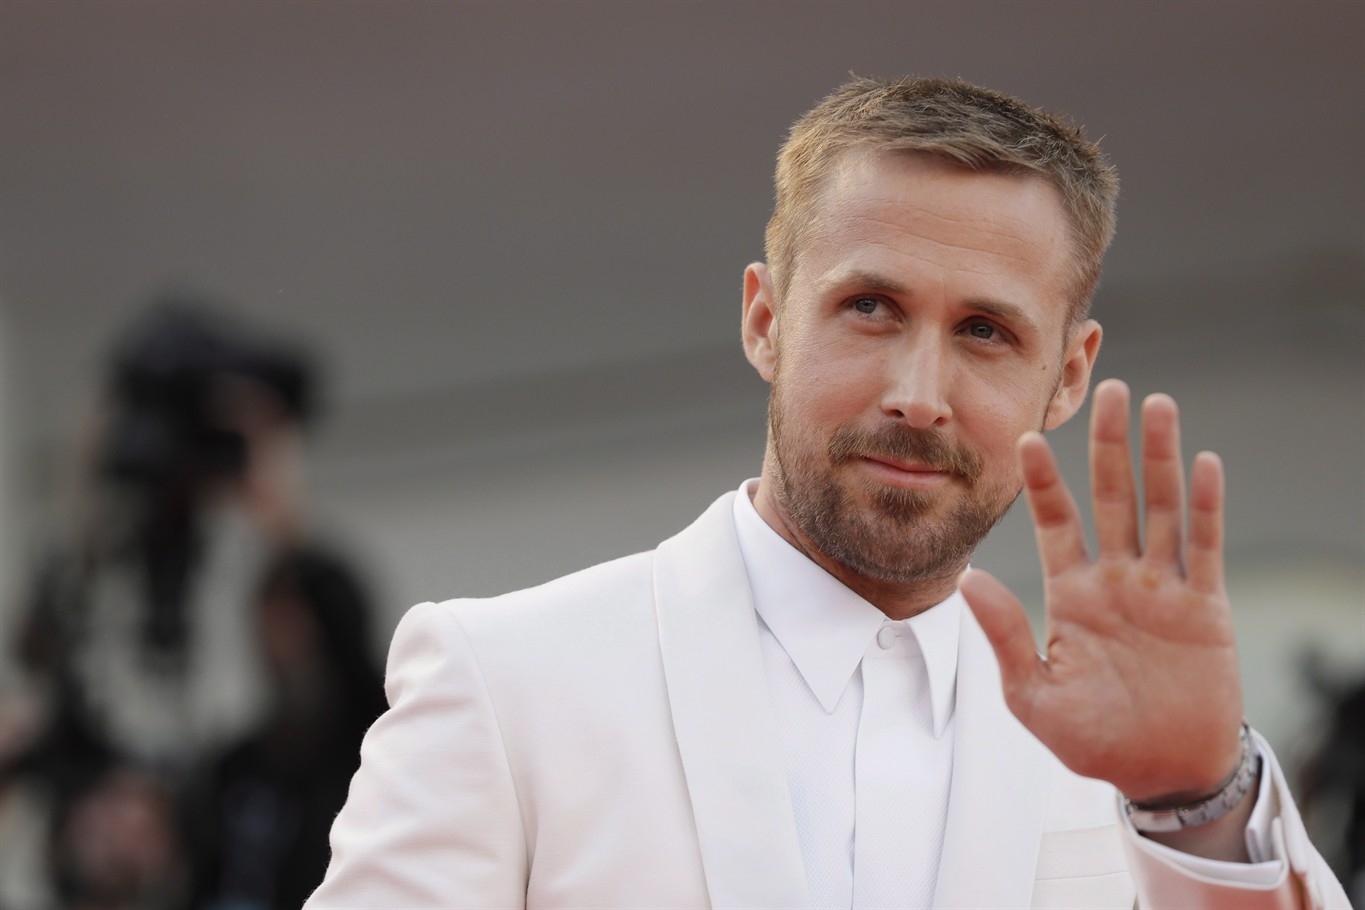 Ontario PCs remove Ryan Gosling image from fundraising message